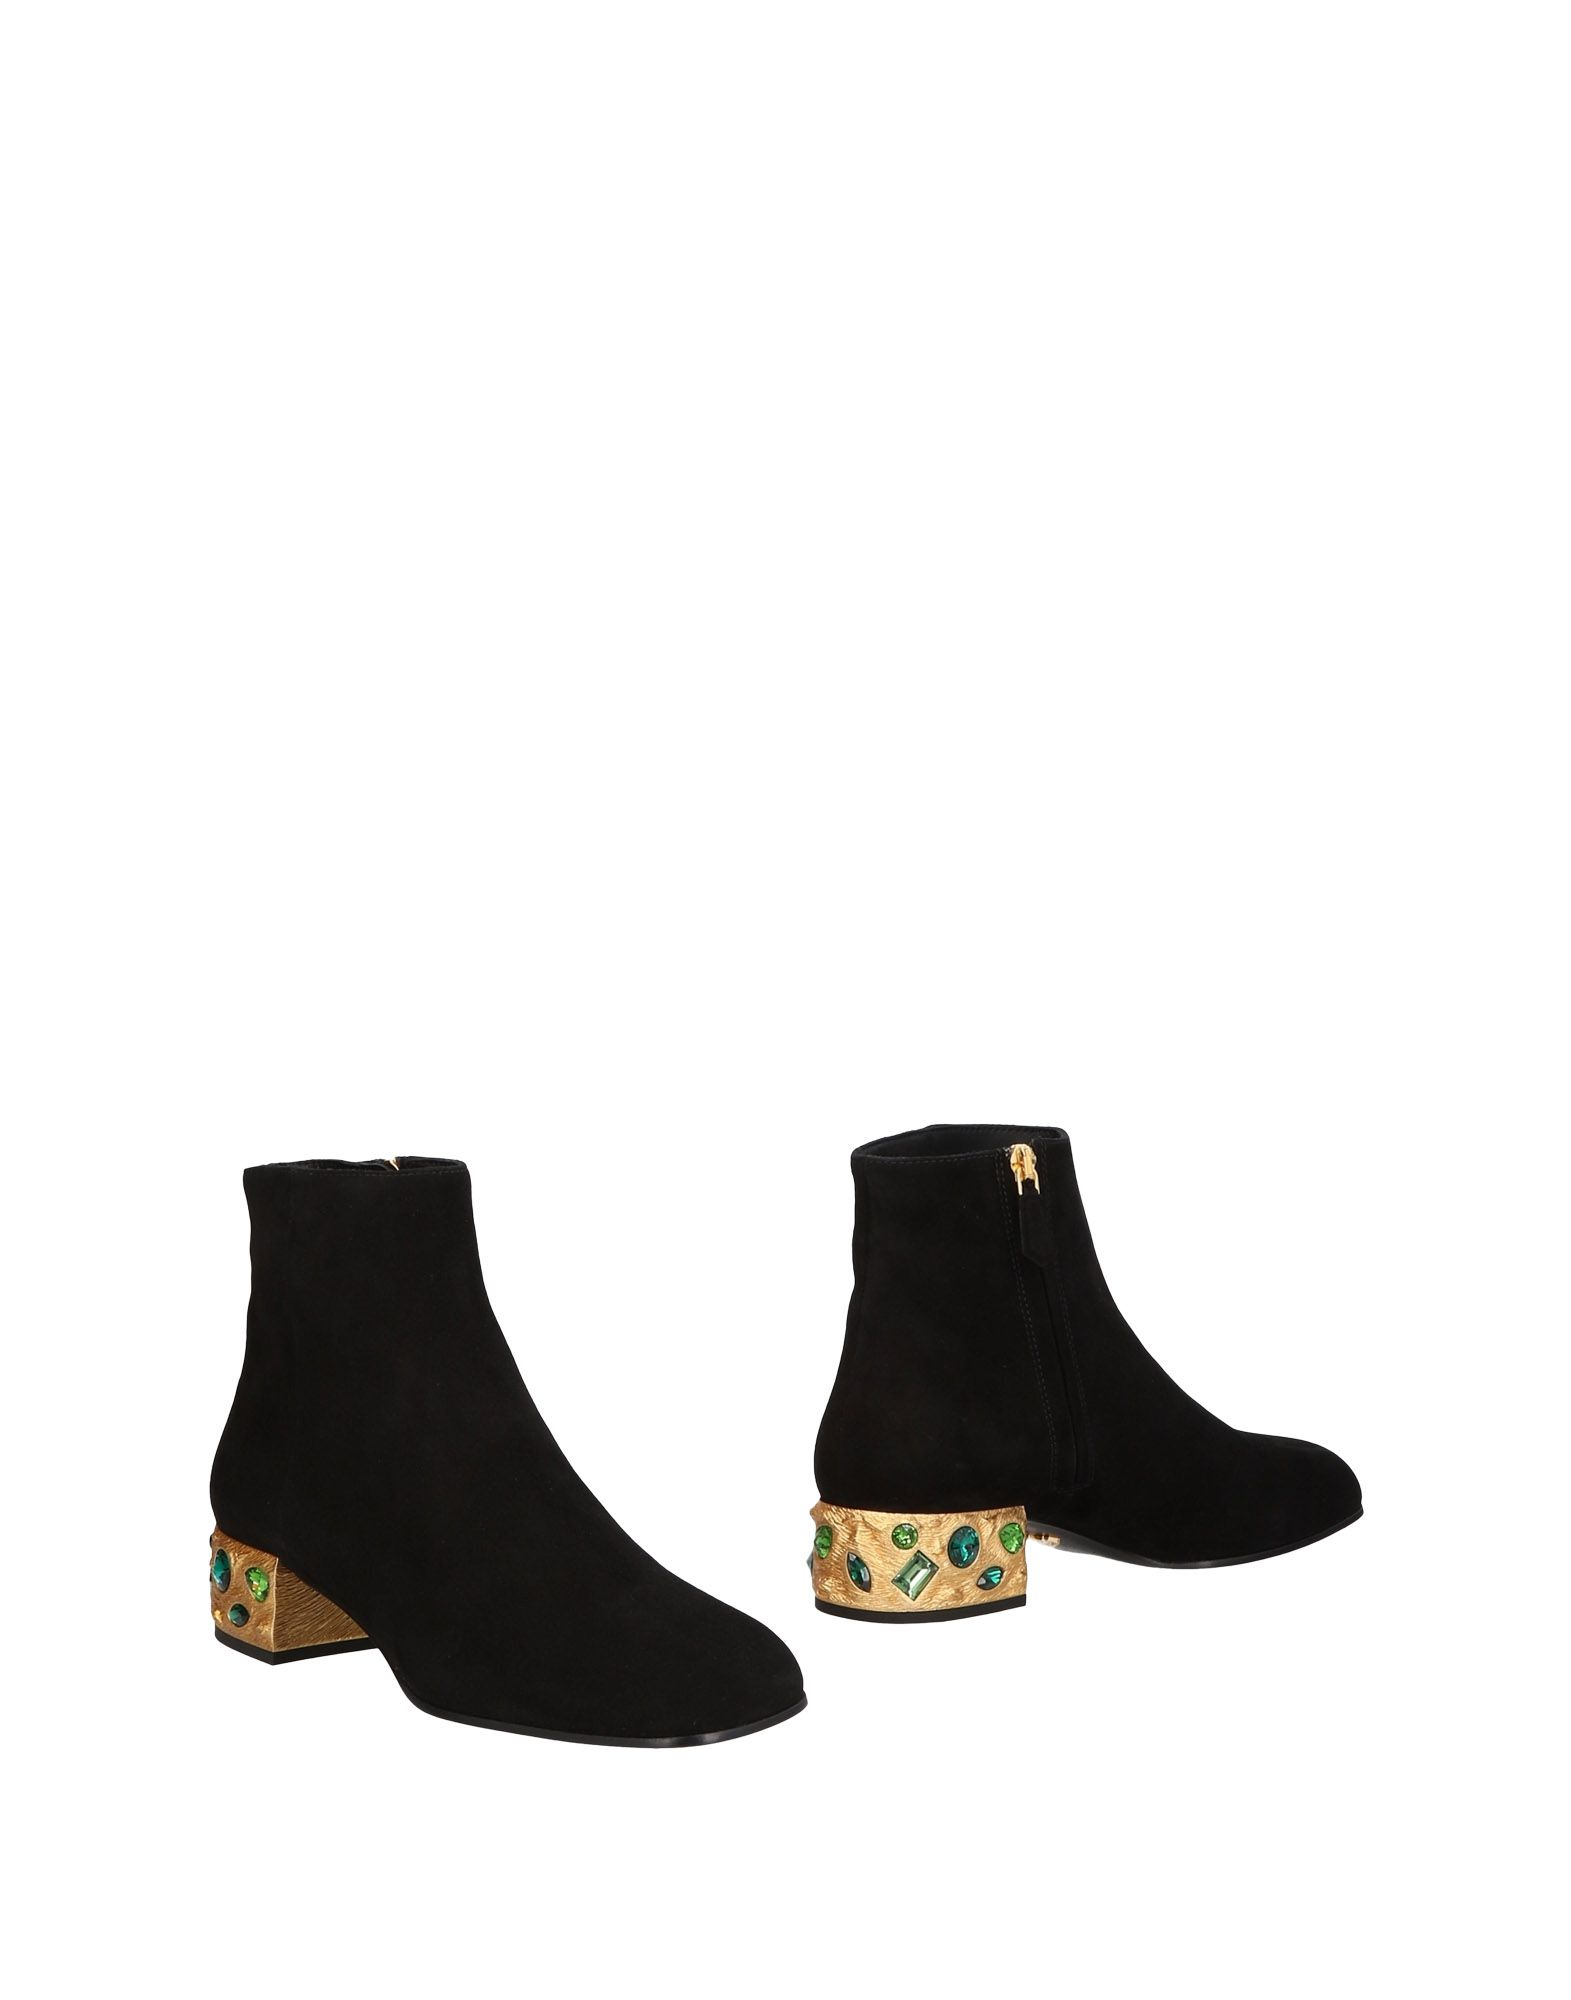 Prada Ankle Boot Boots - Women Prada Ankle Boots Boot online on  United Kingdom - 11465758XH a28397